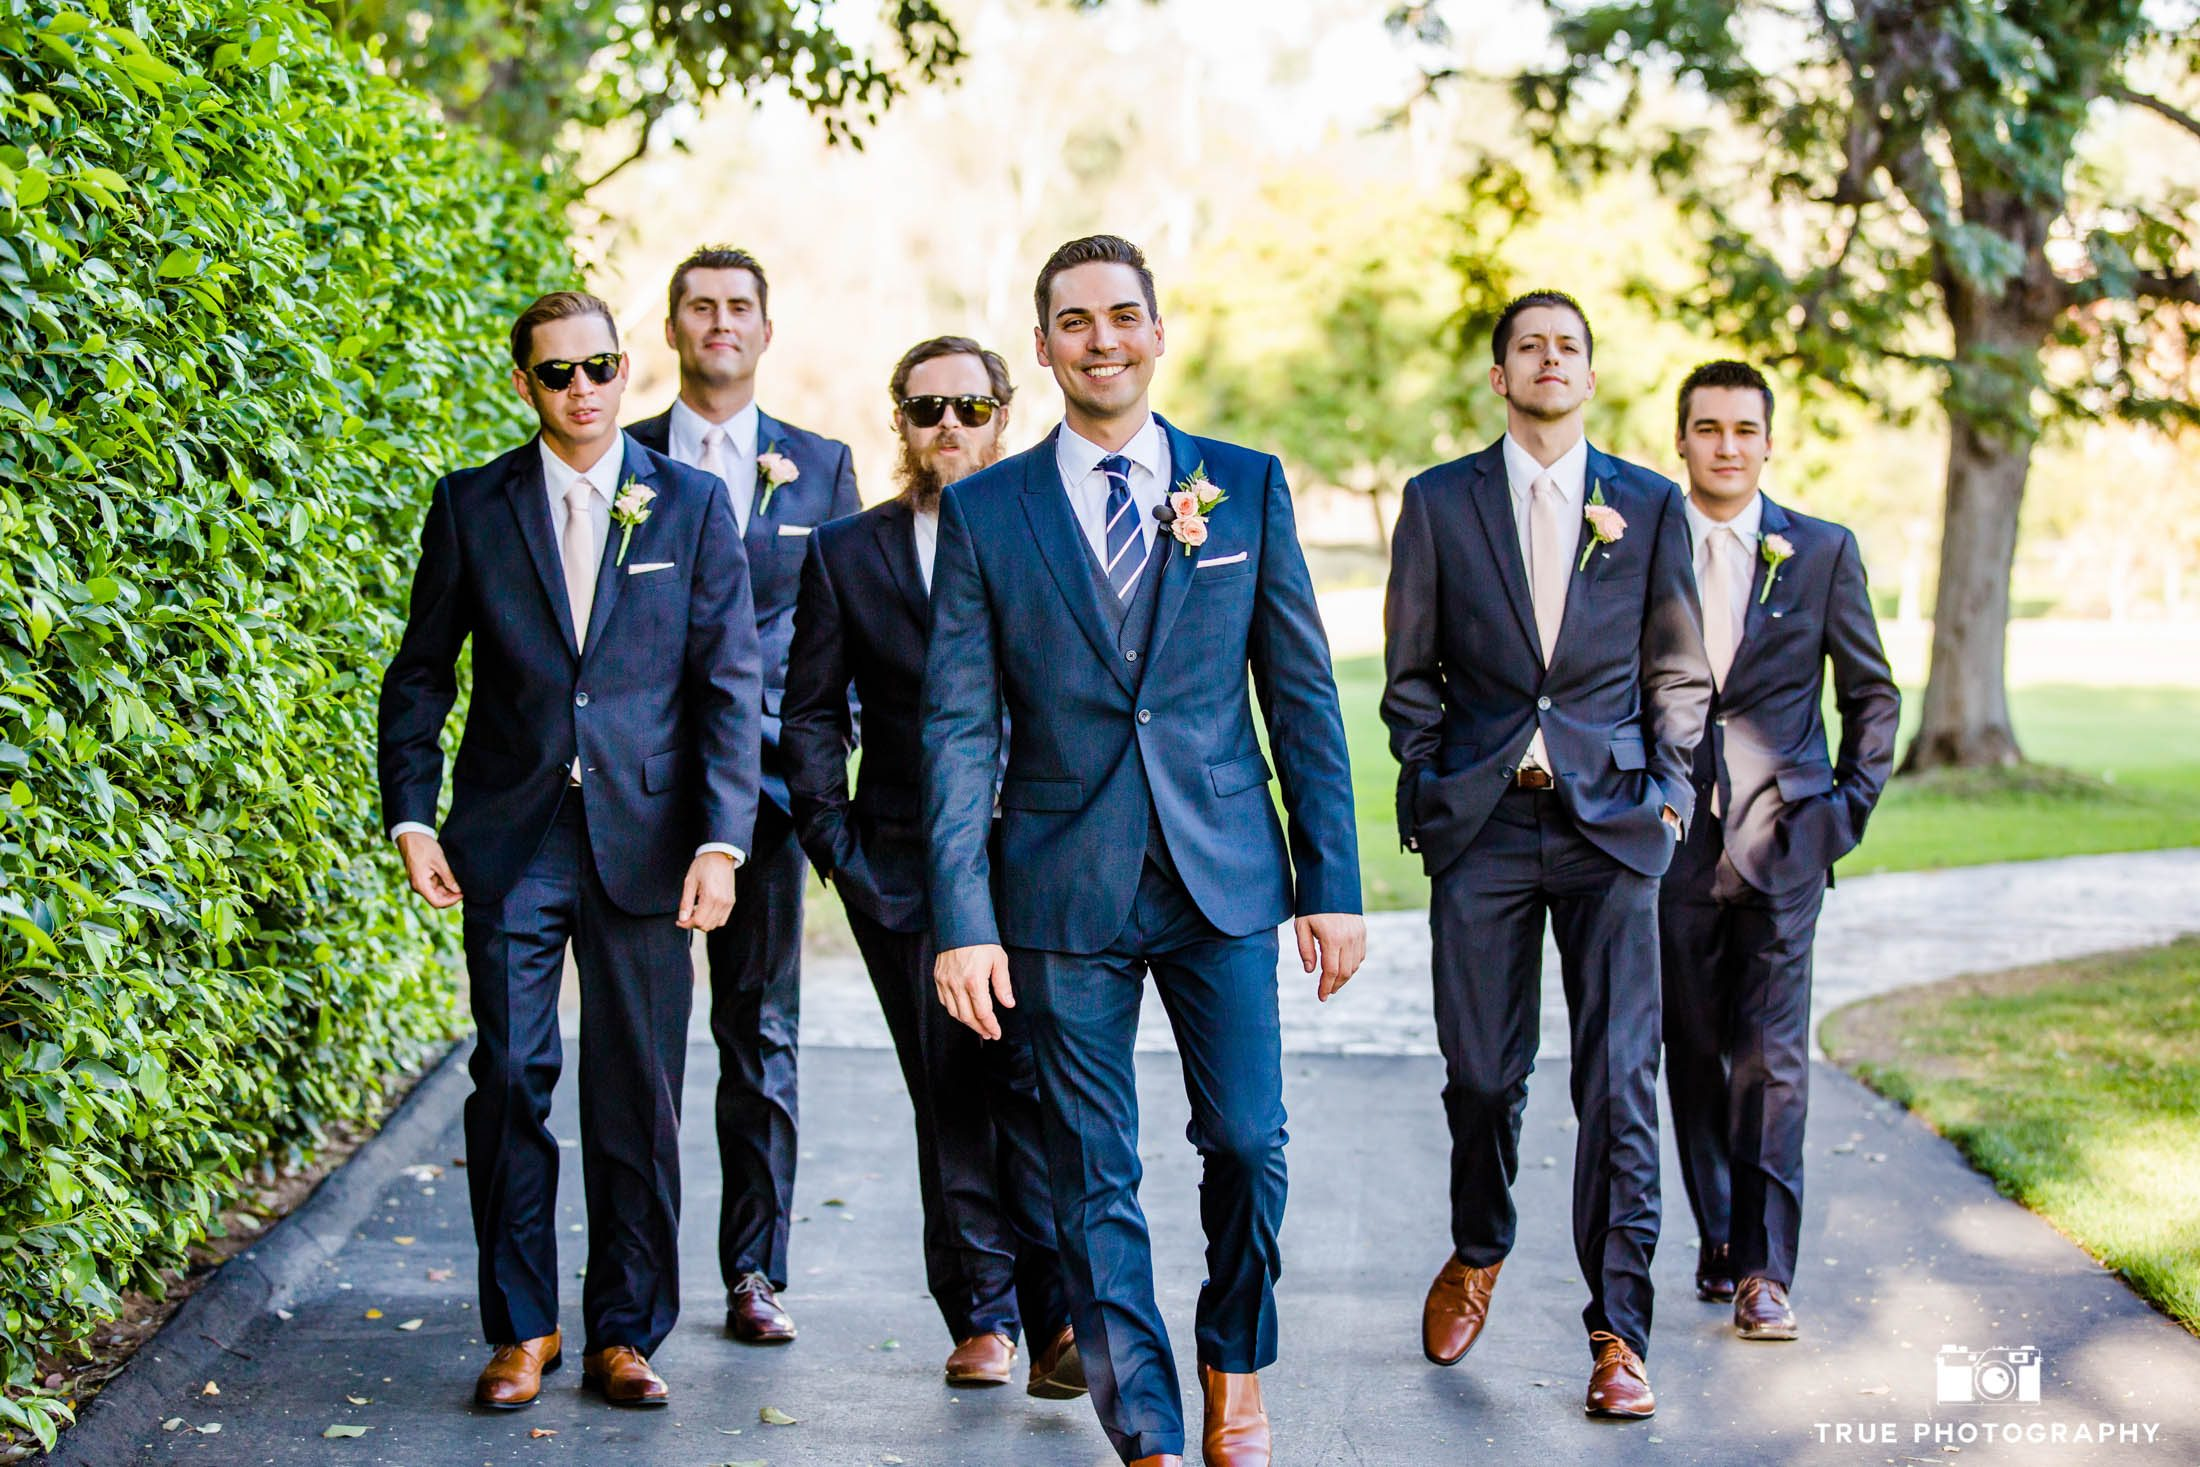 The groom and his groomsmen taking a walk